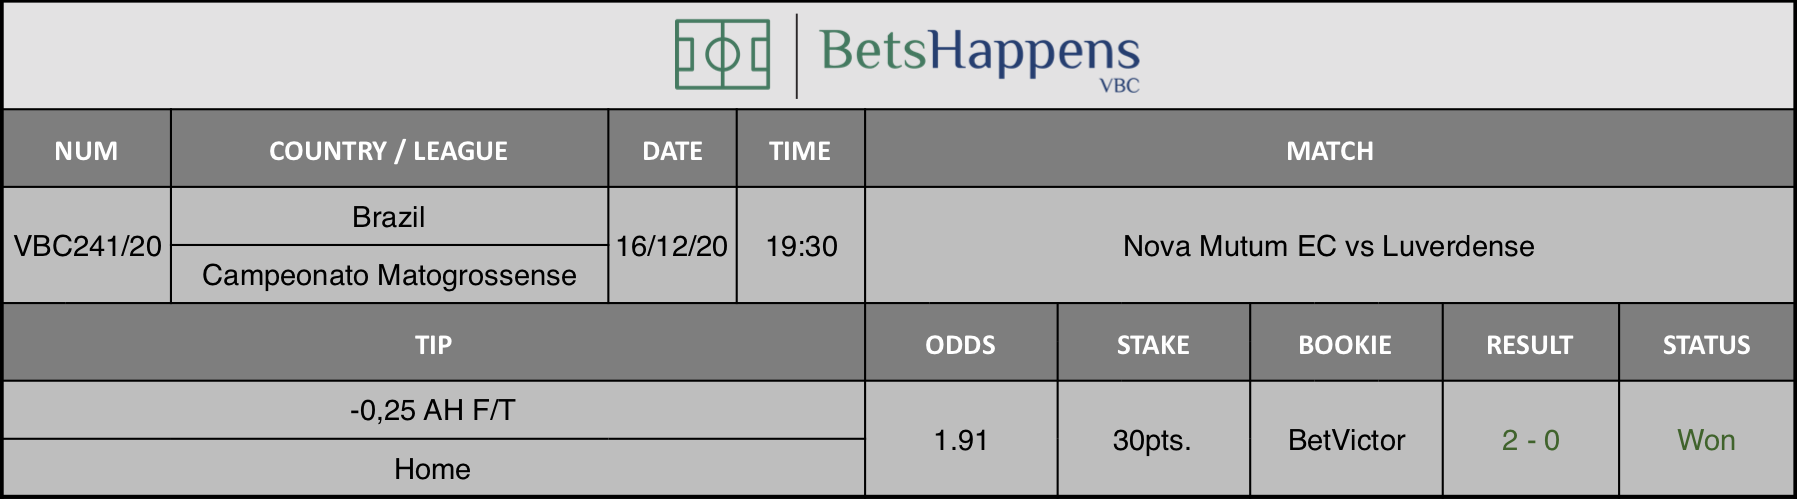 Results of our tip for the Nova Mutum EC vs Luverdense match where -0,25 AH F/T Home is recommended.